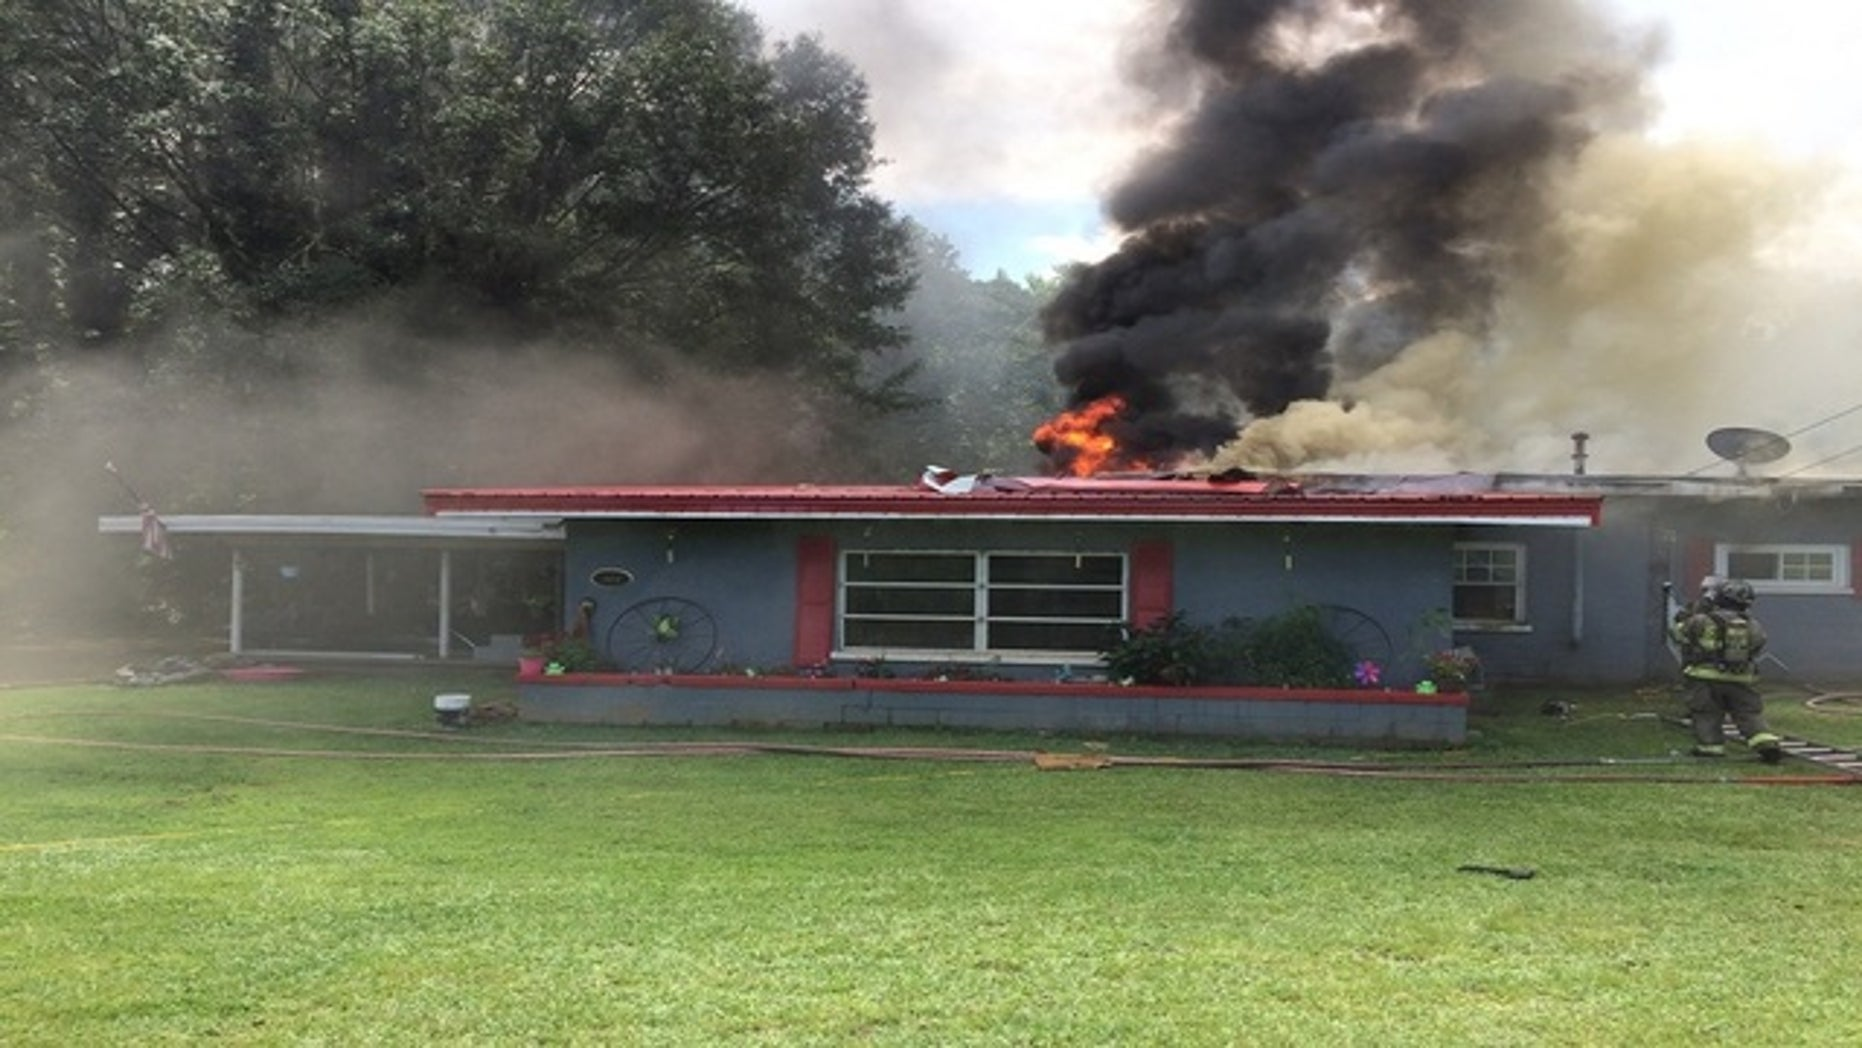 The deadly fire at a home in Spalding County, Georgia, on Saturday was caused by a cigarette tossed into a trash can, officials say. (Fox 5 Atlanta)